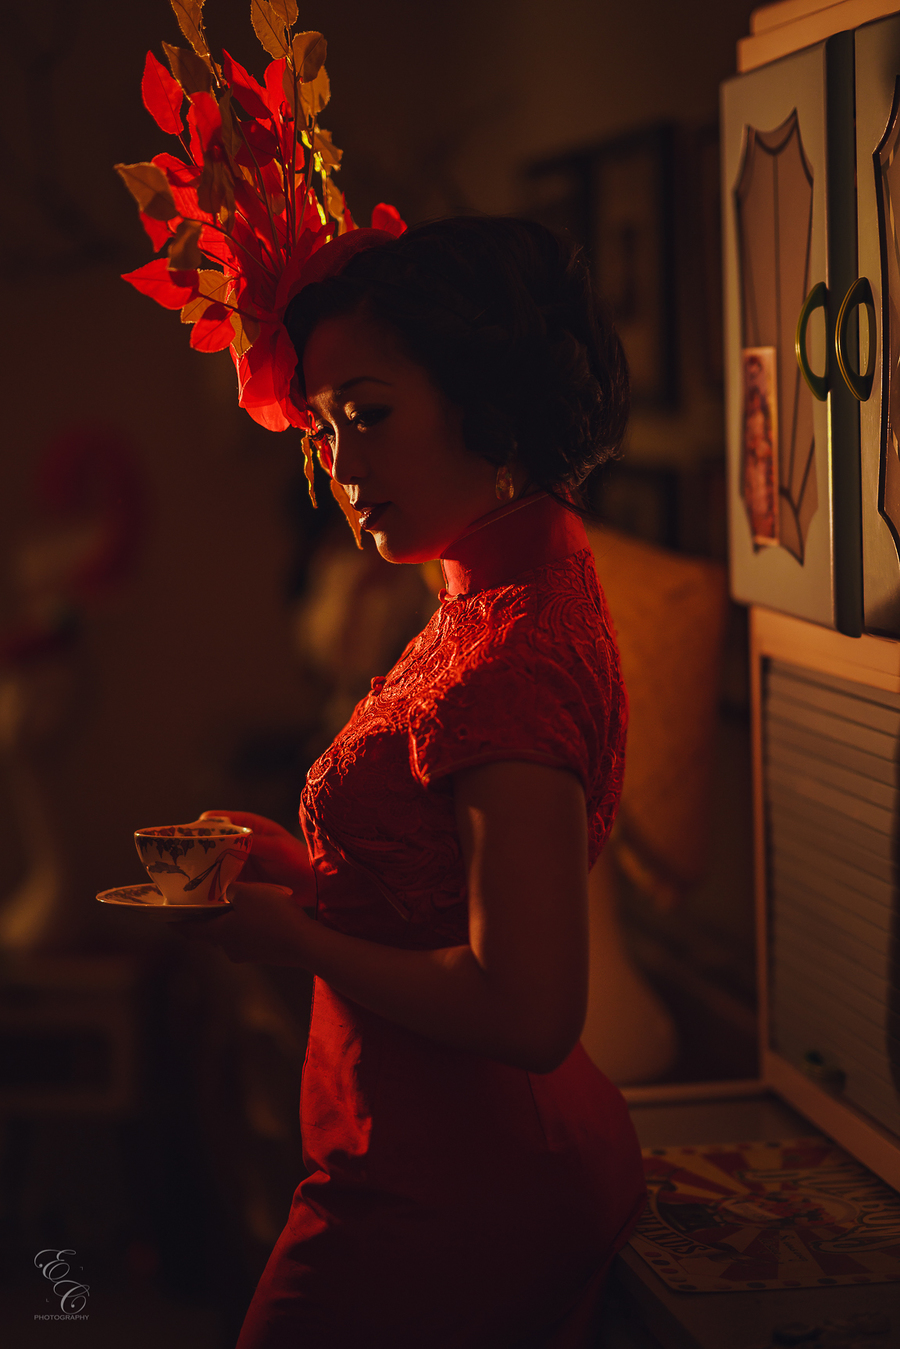 Tea, one of the constant fascinators of life. / Photography by ECPhotography, Model Marianne Cheesecake / Uploaded 21st December 2017 @ 08:59 PM